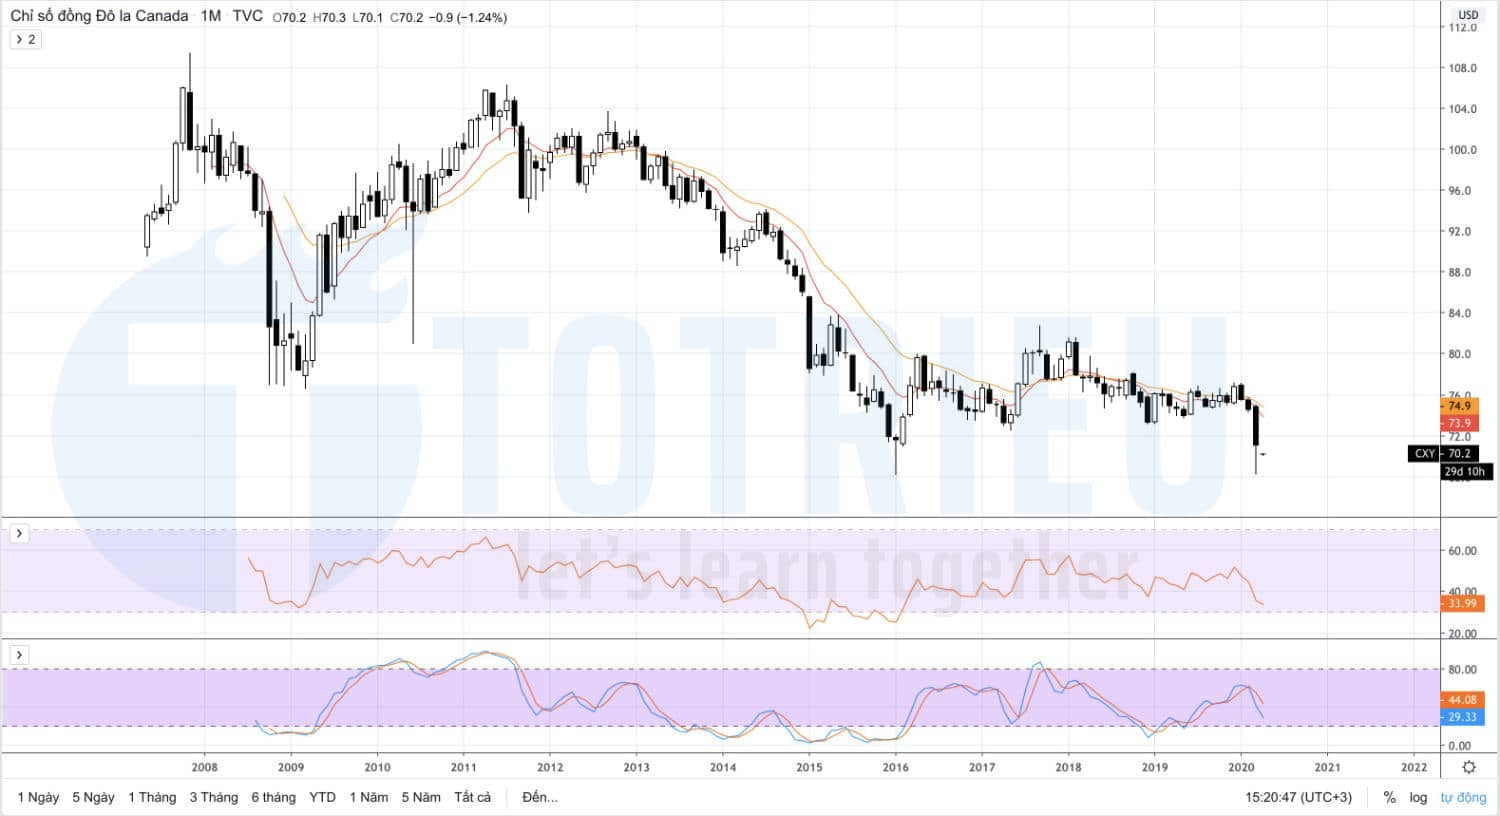 CANADIAN DOLLAR CURRENCY INDEX 04/2020 - tháng 06/2020